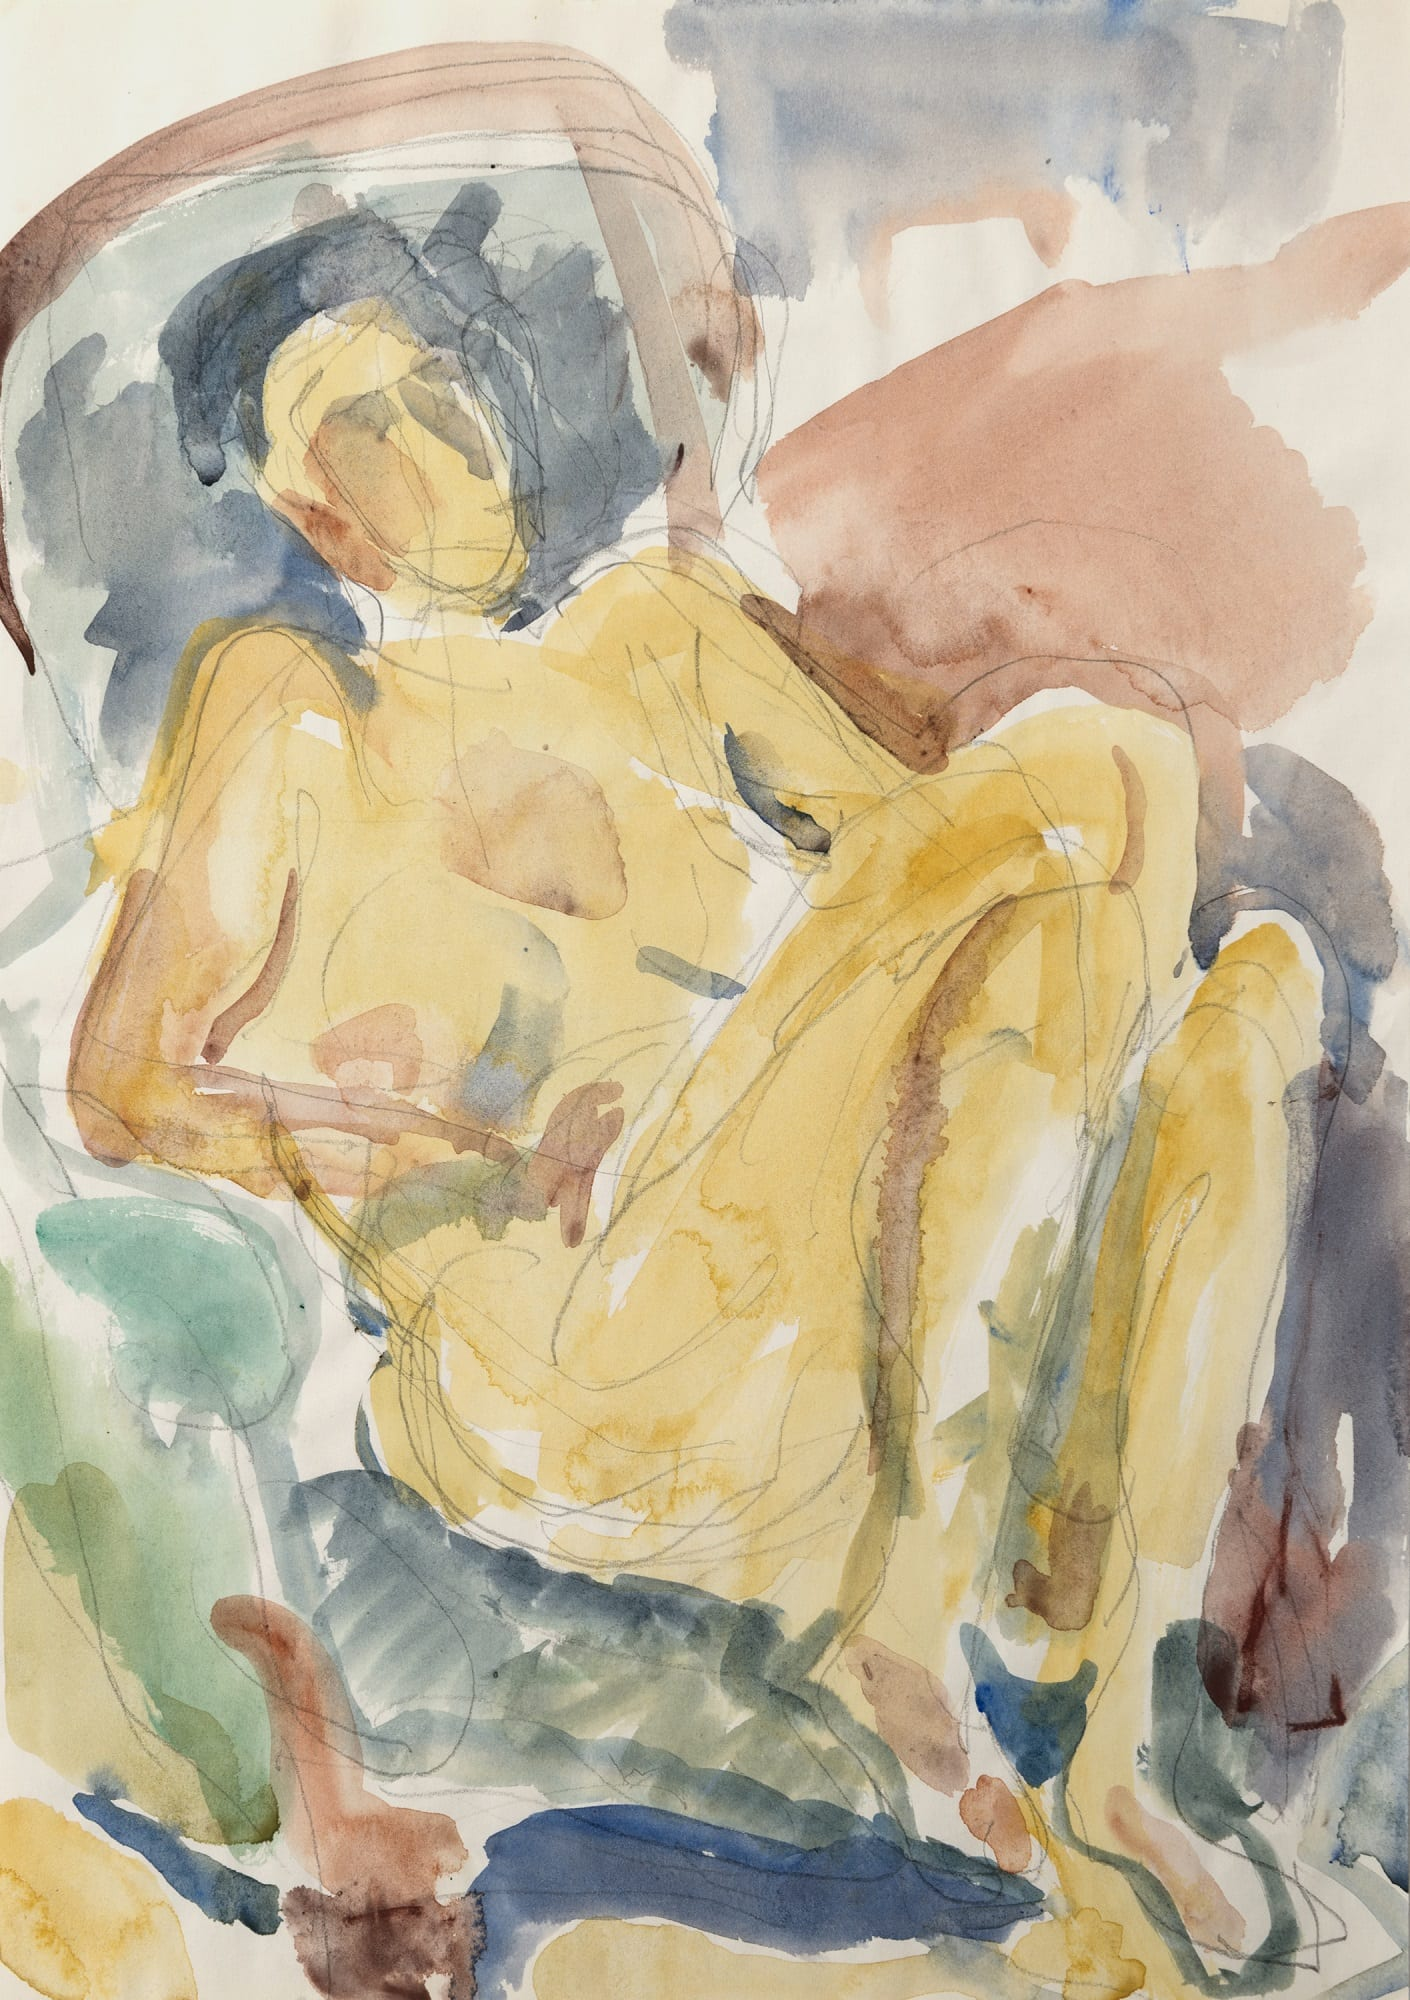 <span class=&#34;link fancybox-details-link&#34;><a href=&#34;/exhibitions/23/works/artworks6922/&#34;>View Detail Page</a></span><div class=&#34;medium&#34;>Watercolour and pencil on paper</div> <div class=&#34;dimensions&#34;>16.7 x 11.8 in<br />42.5 x 30 cm</div>